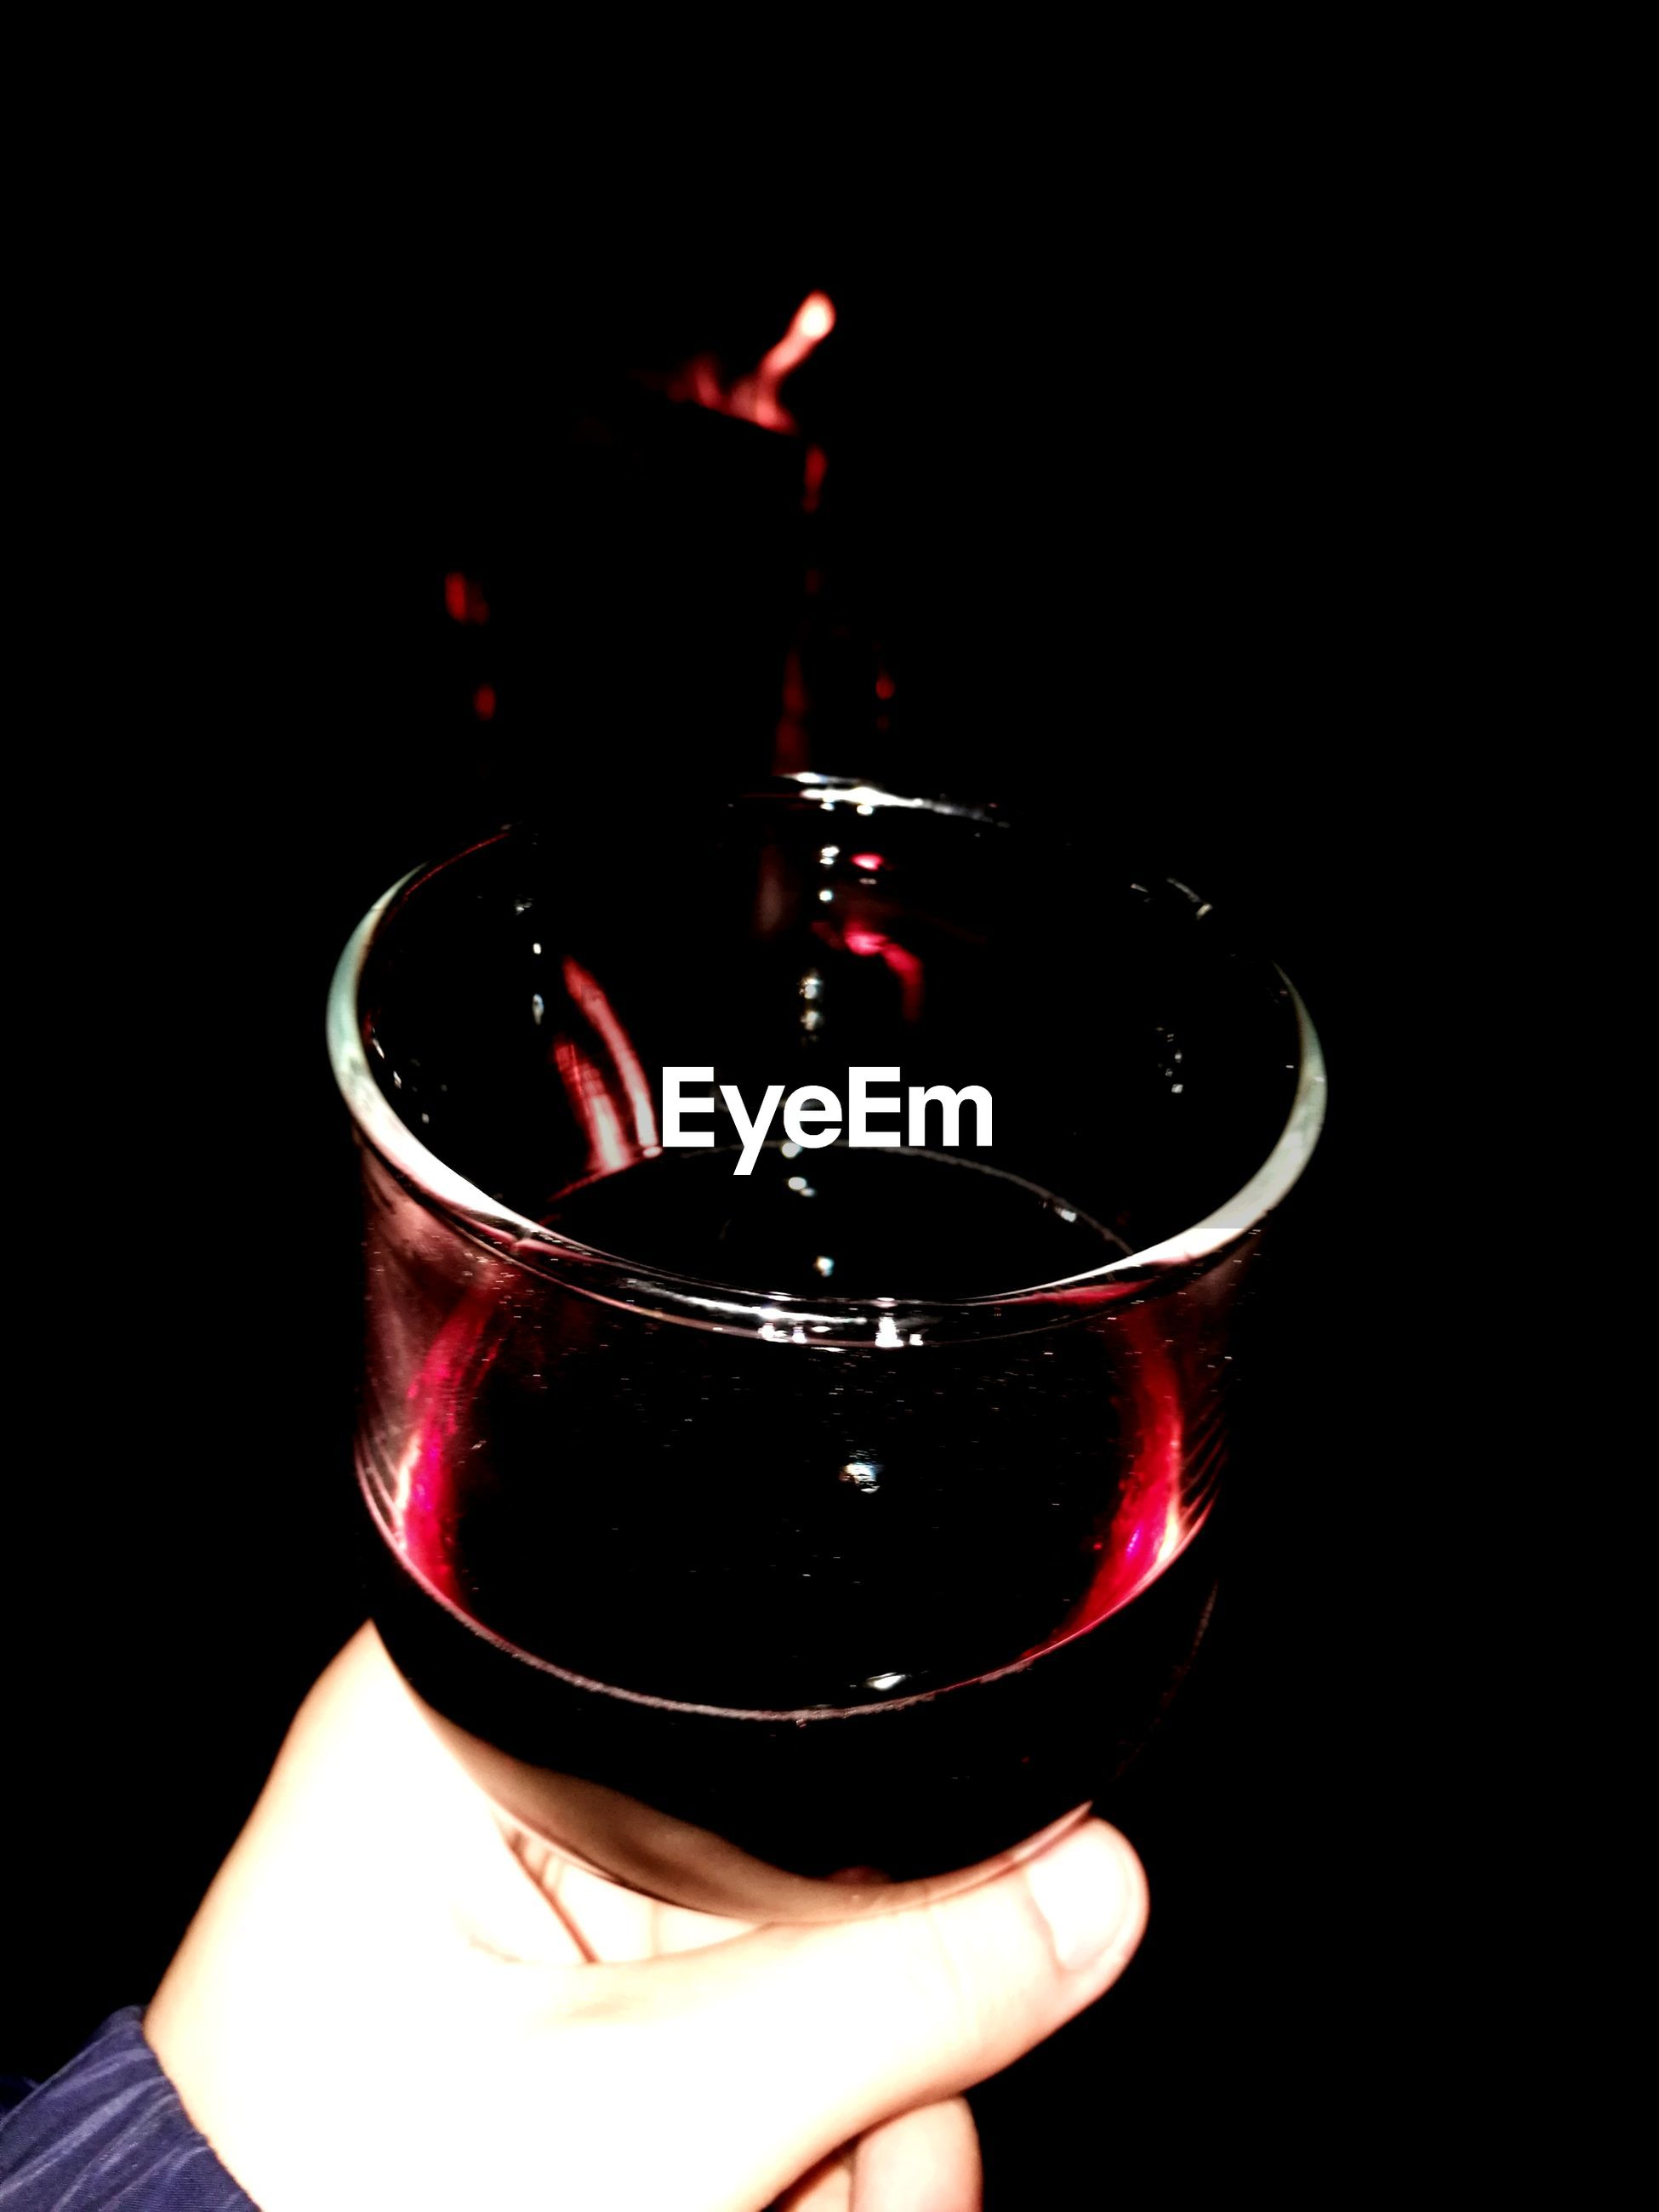 drink, human hand, black background, refreshment, alcohol, food and drink, real people, holding, one person, flame, close-up, night, heat - temperature, burning, human body part, wine, wineglass, drinking glass, indoors, illuminated, freshness